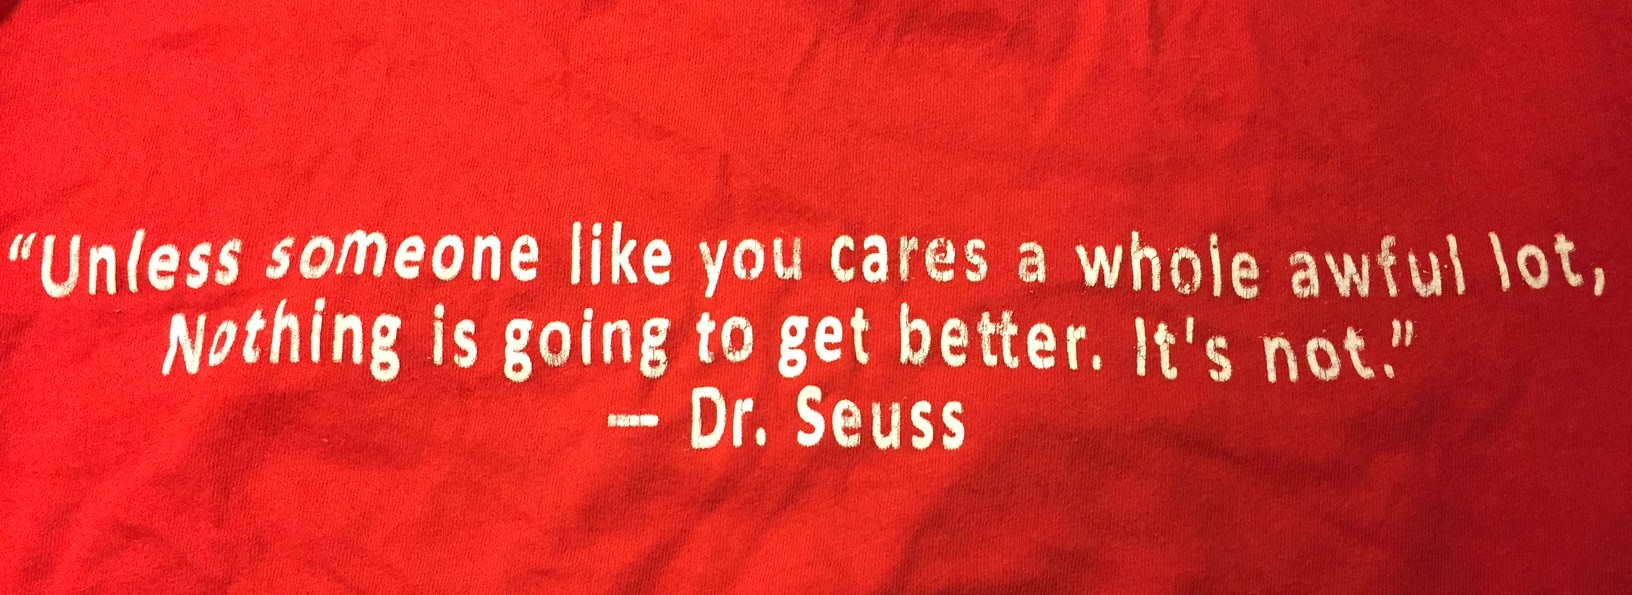 Love Quote Dr Seuss Drseuss Wisdom « Clemson Fimrc